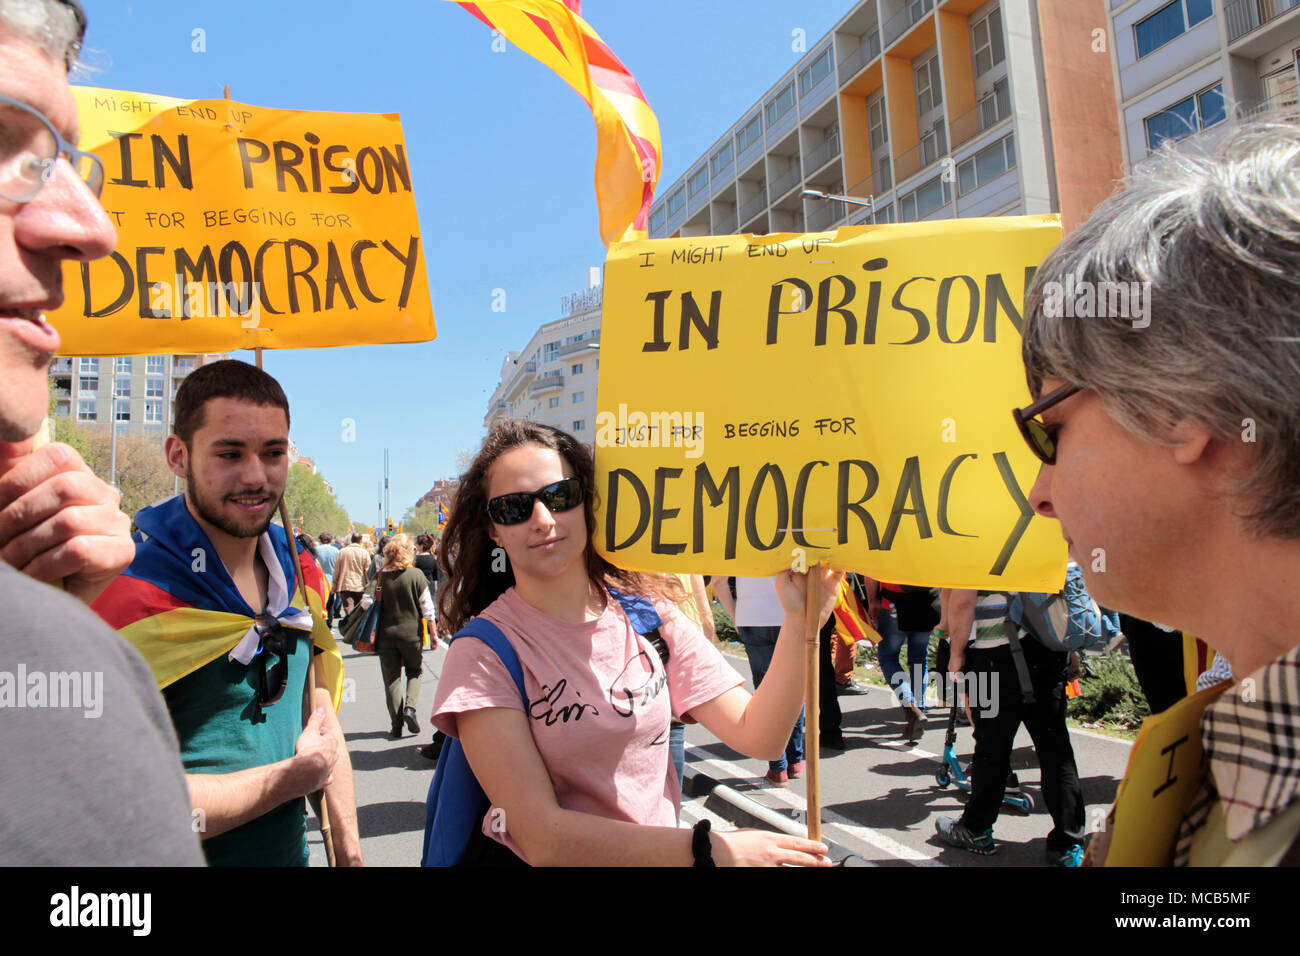 Barcelona, Spain. 15th April, 2018.    Freedom for political prisoners demonstration IN central barcelona, in av. del Parallel. Hundreds of Thousands of Catalans gather in a demonstration to show support for the political prisoners who have been detained in madrid for anti-constitutional behaviour.  Credit: rich bowen/Alamy Live News Stock Photo